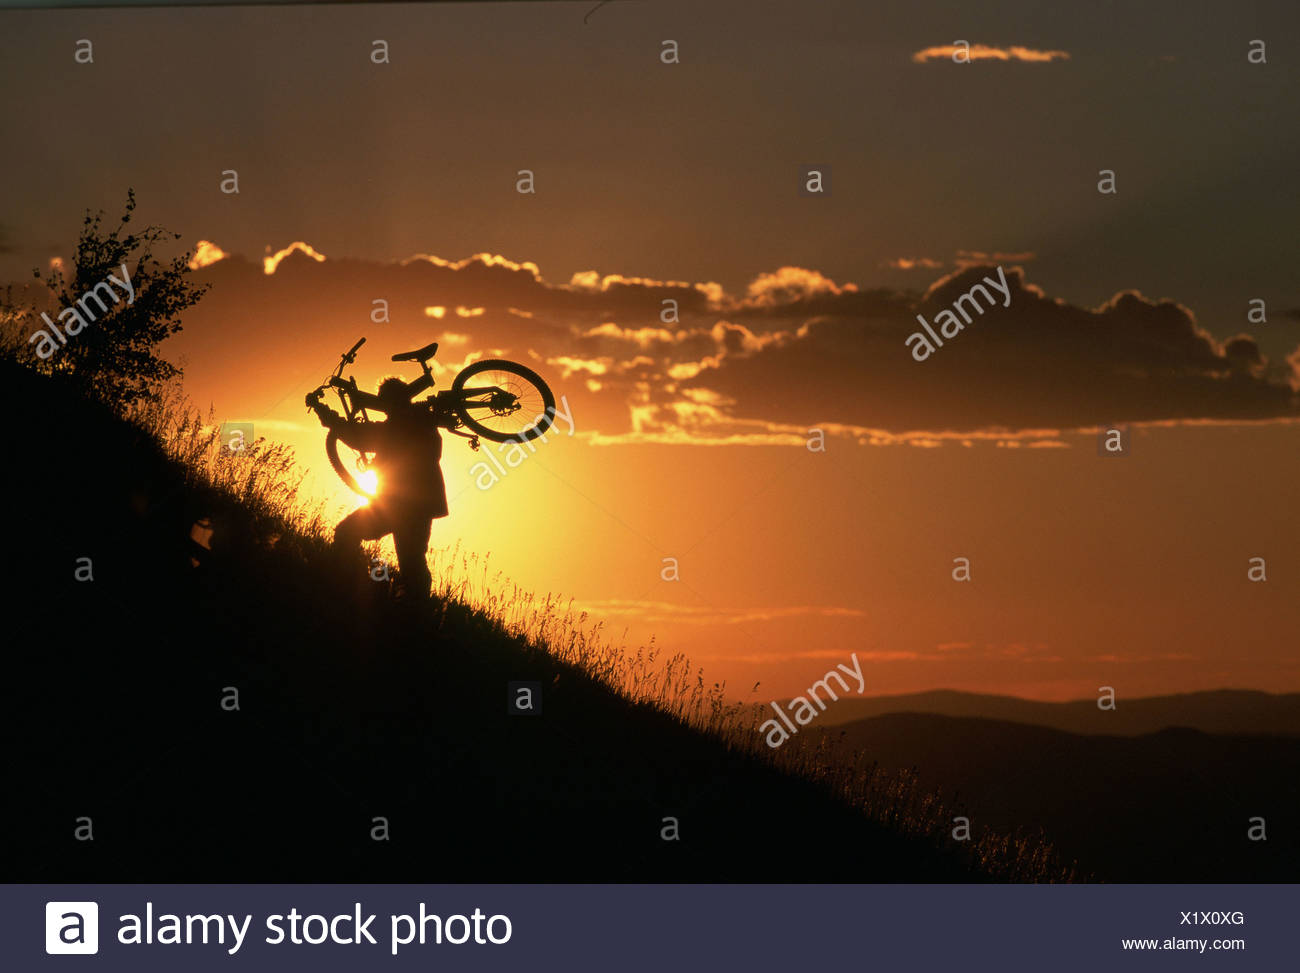 Person carrying bicycle uphill during sunset - Stock Image